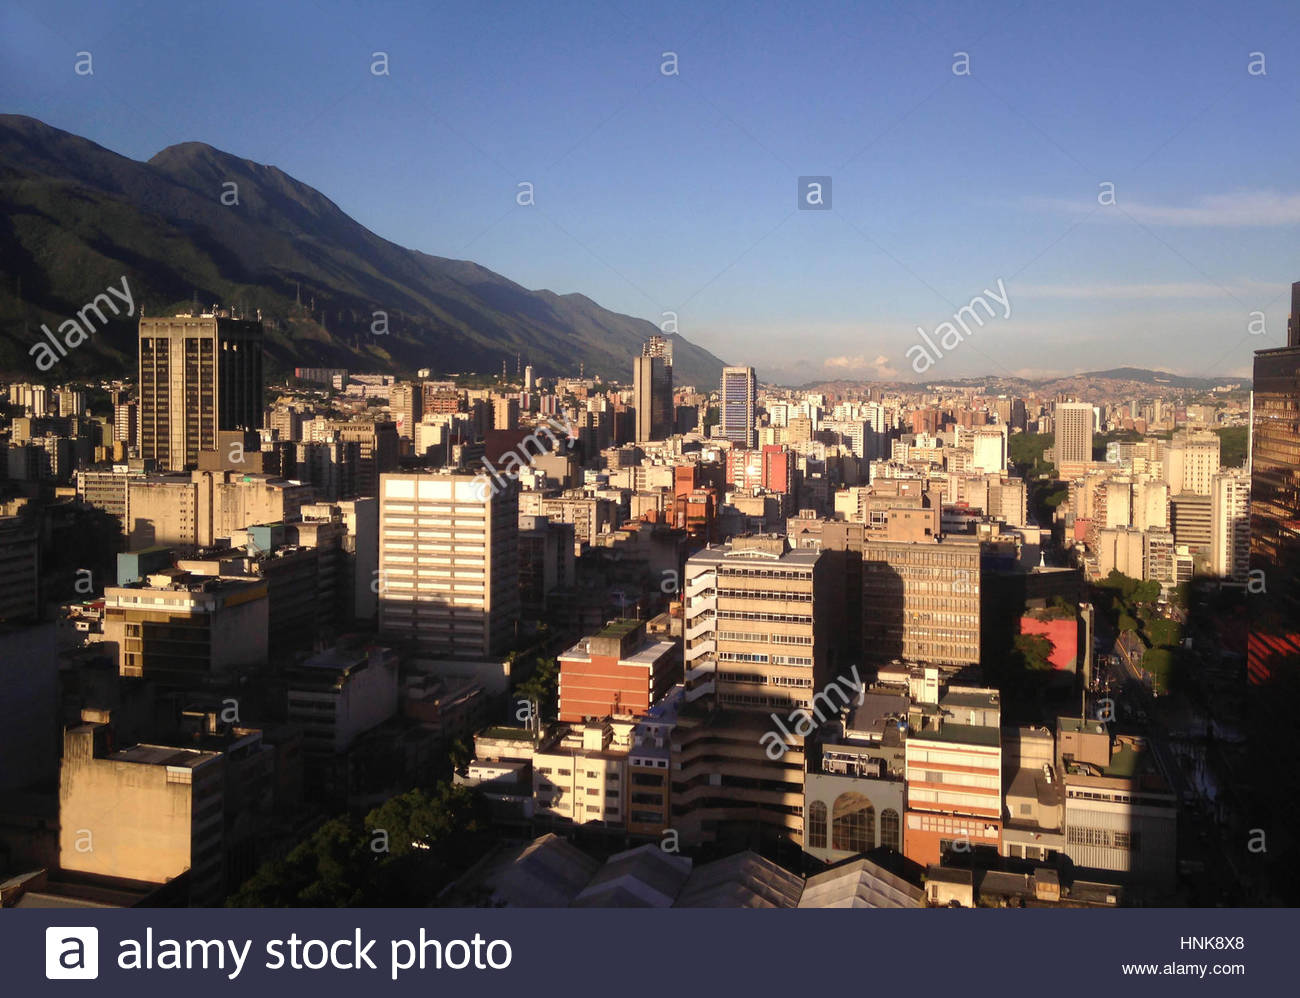 Caracas skyline. View of Caracas and El Avila National Park, Venezuela. - Stock Image